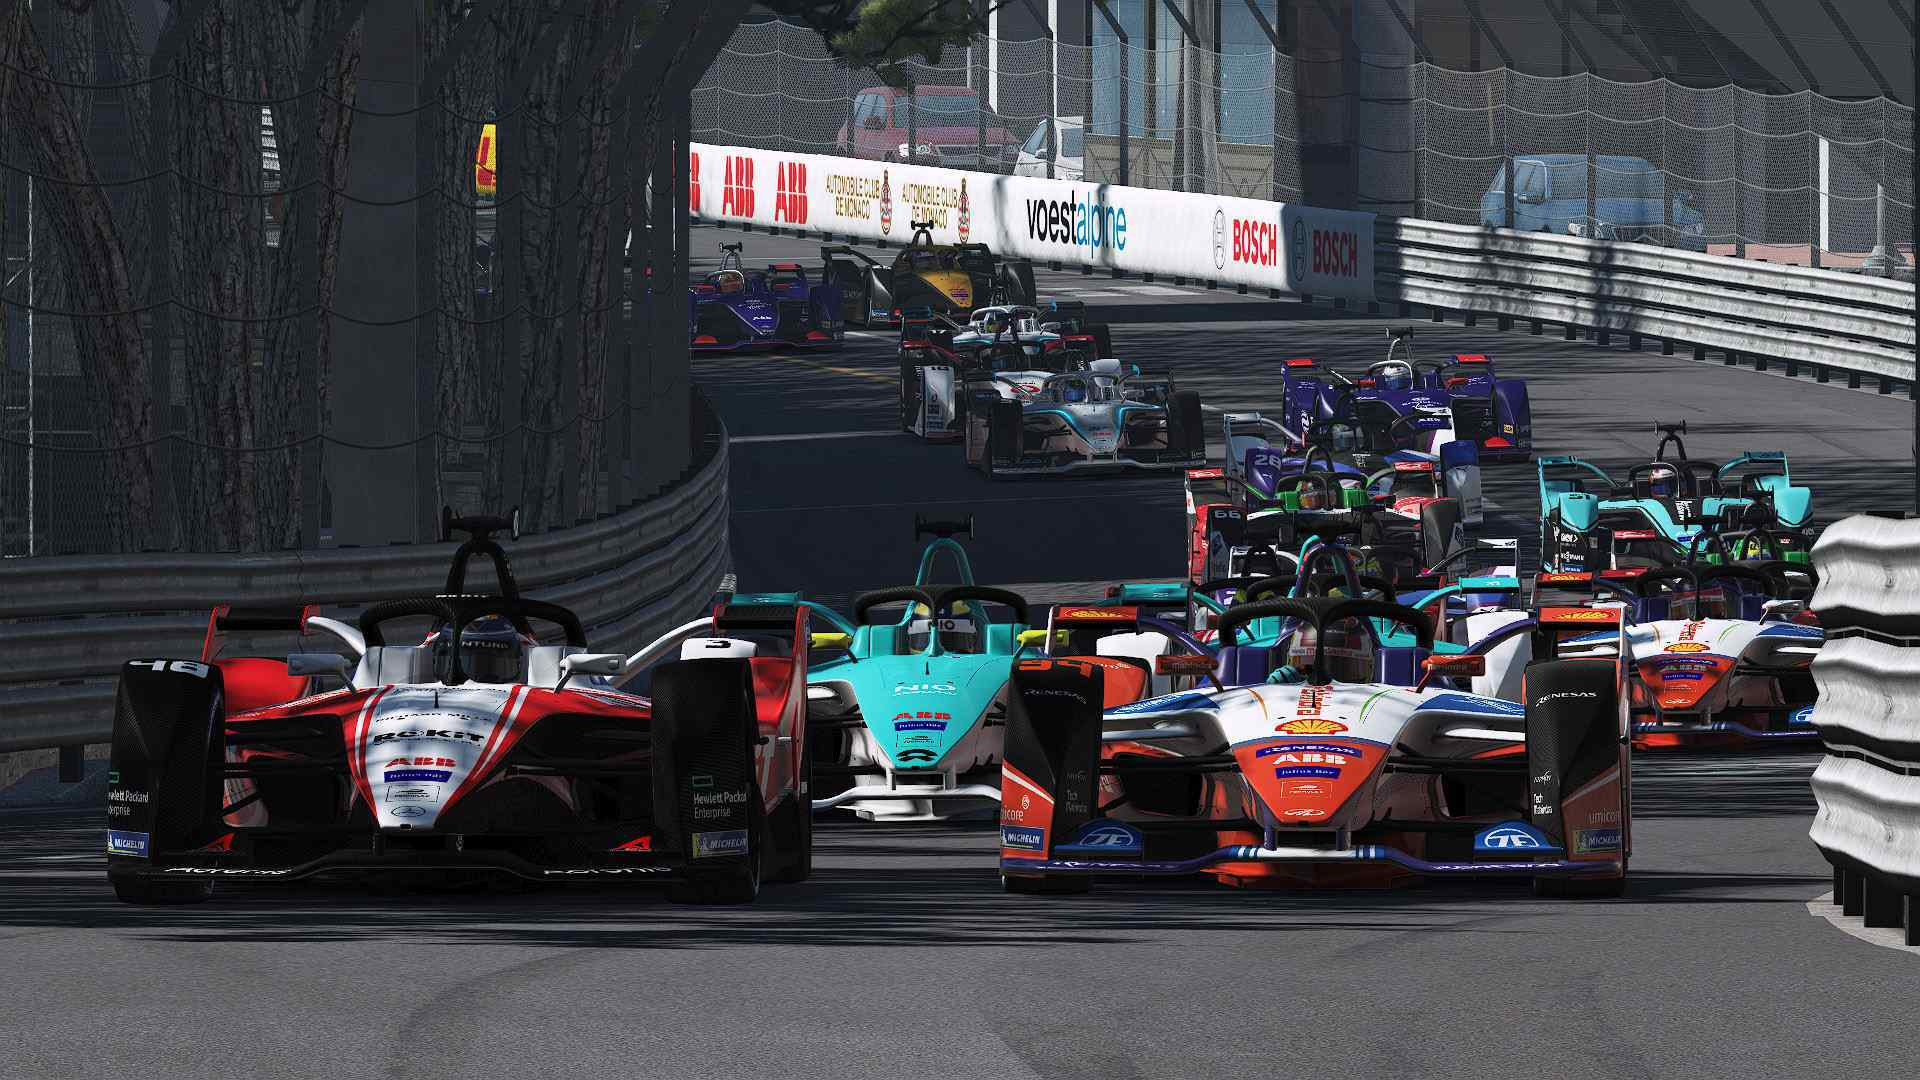 Professional Driver Dropped From Team After Letting Pro Sim Racer Impersonate Him in Race